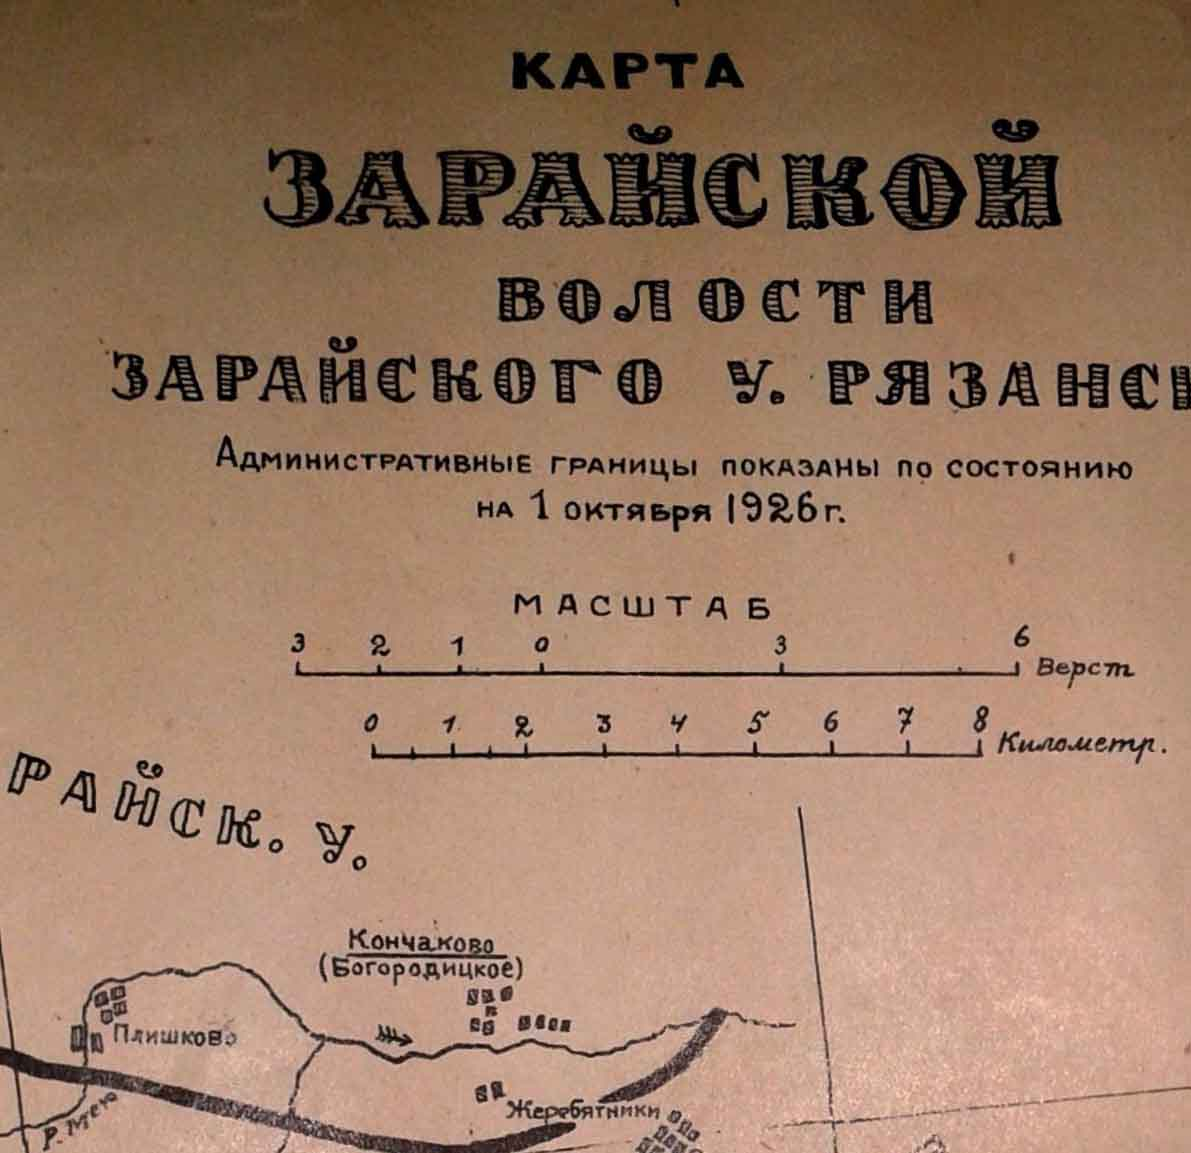 Old map of Zaraisk district, 1926